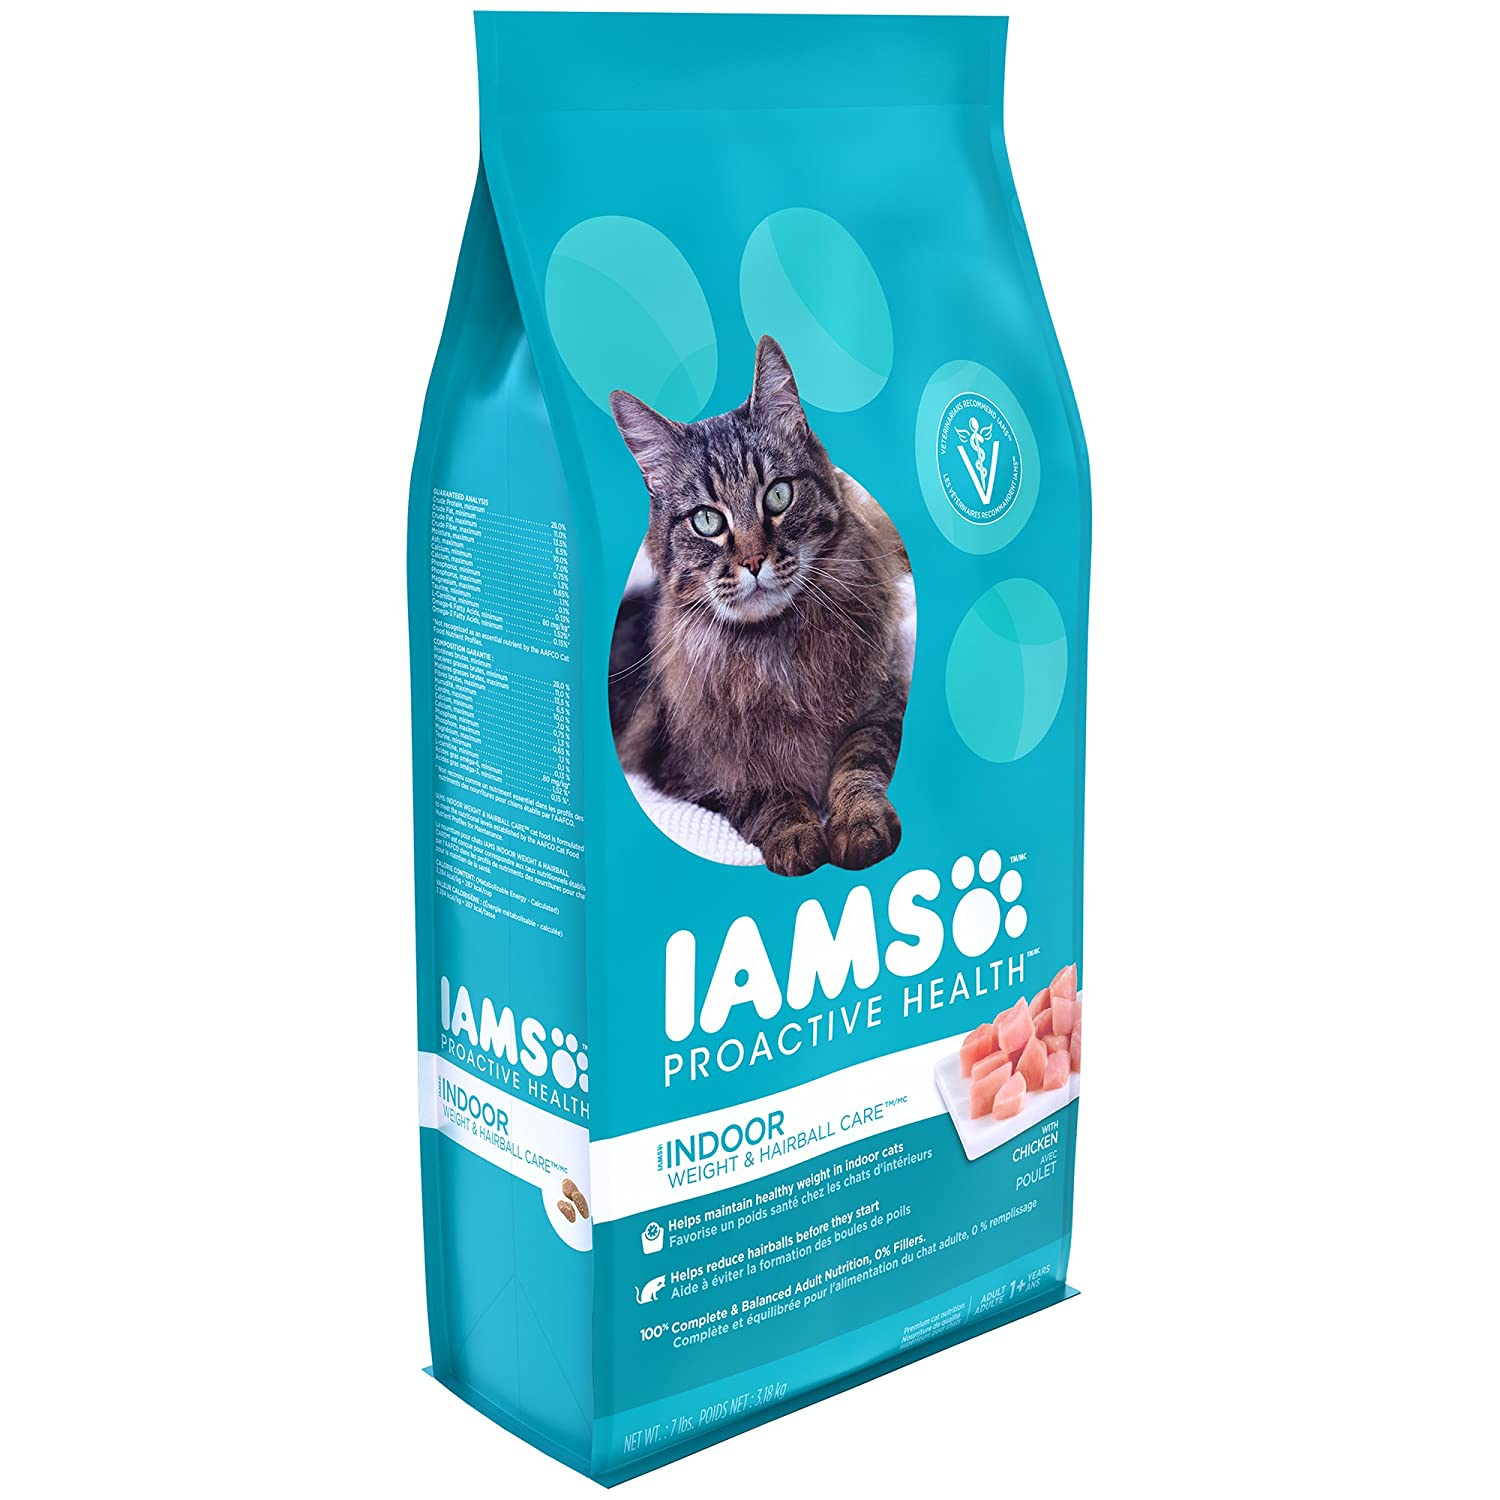 Iams Proactive Health Indoor Weight And Hairball Care Dry Cat Food, (1) 7 Pound Bag, Real Chicken In Every Bite